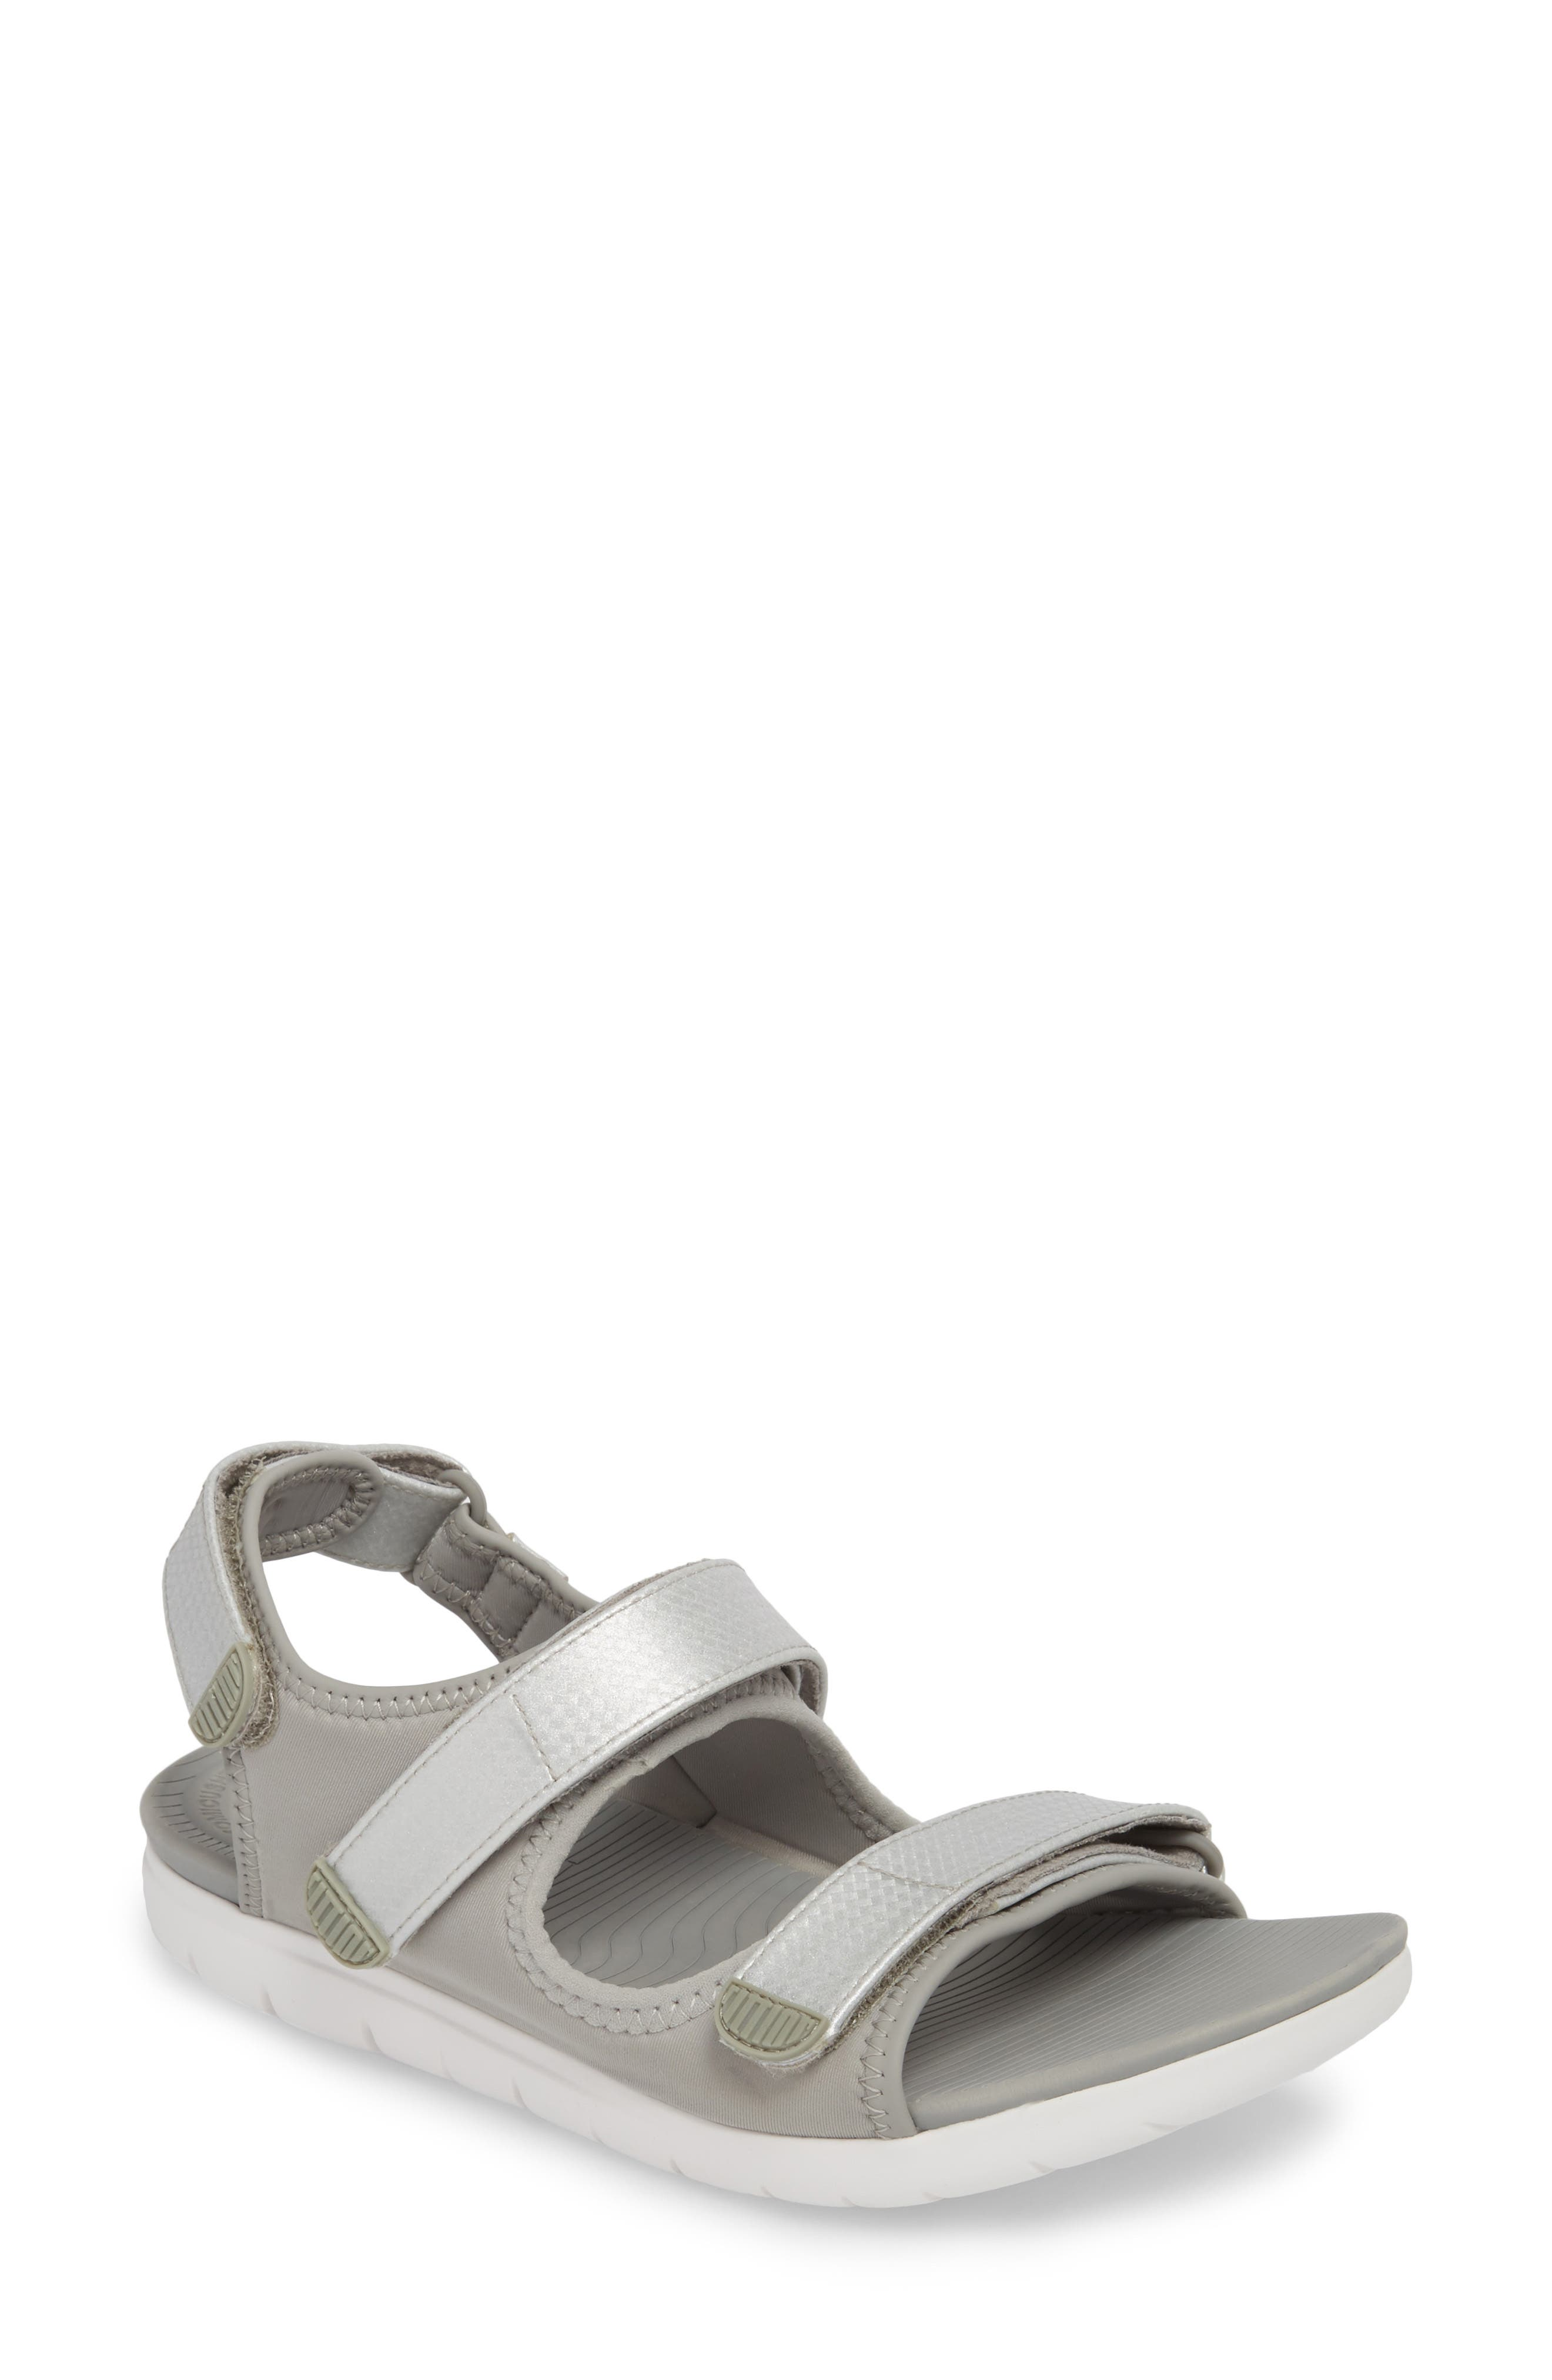 FitfFlop Neoflex<sup>™</sup> Back Strap Sandal,                             Main thumbnail 1, color,                             SOFT GREY/ SILVER LEATHER